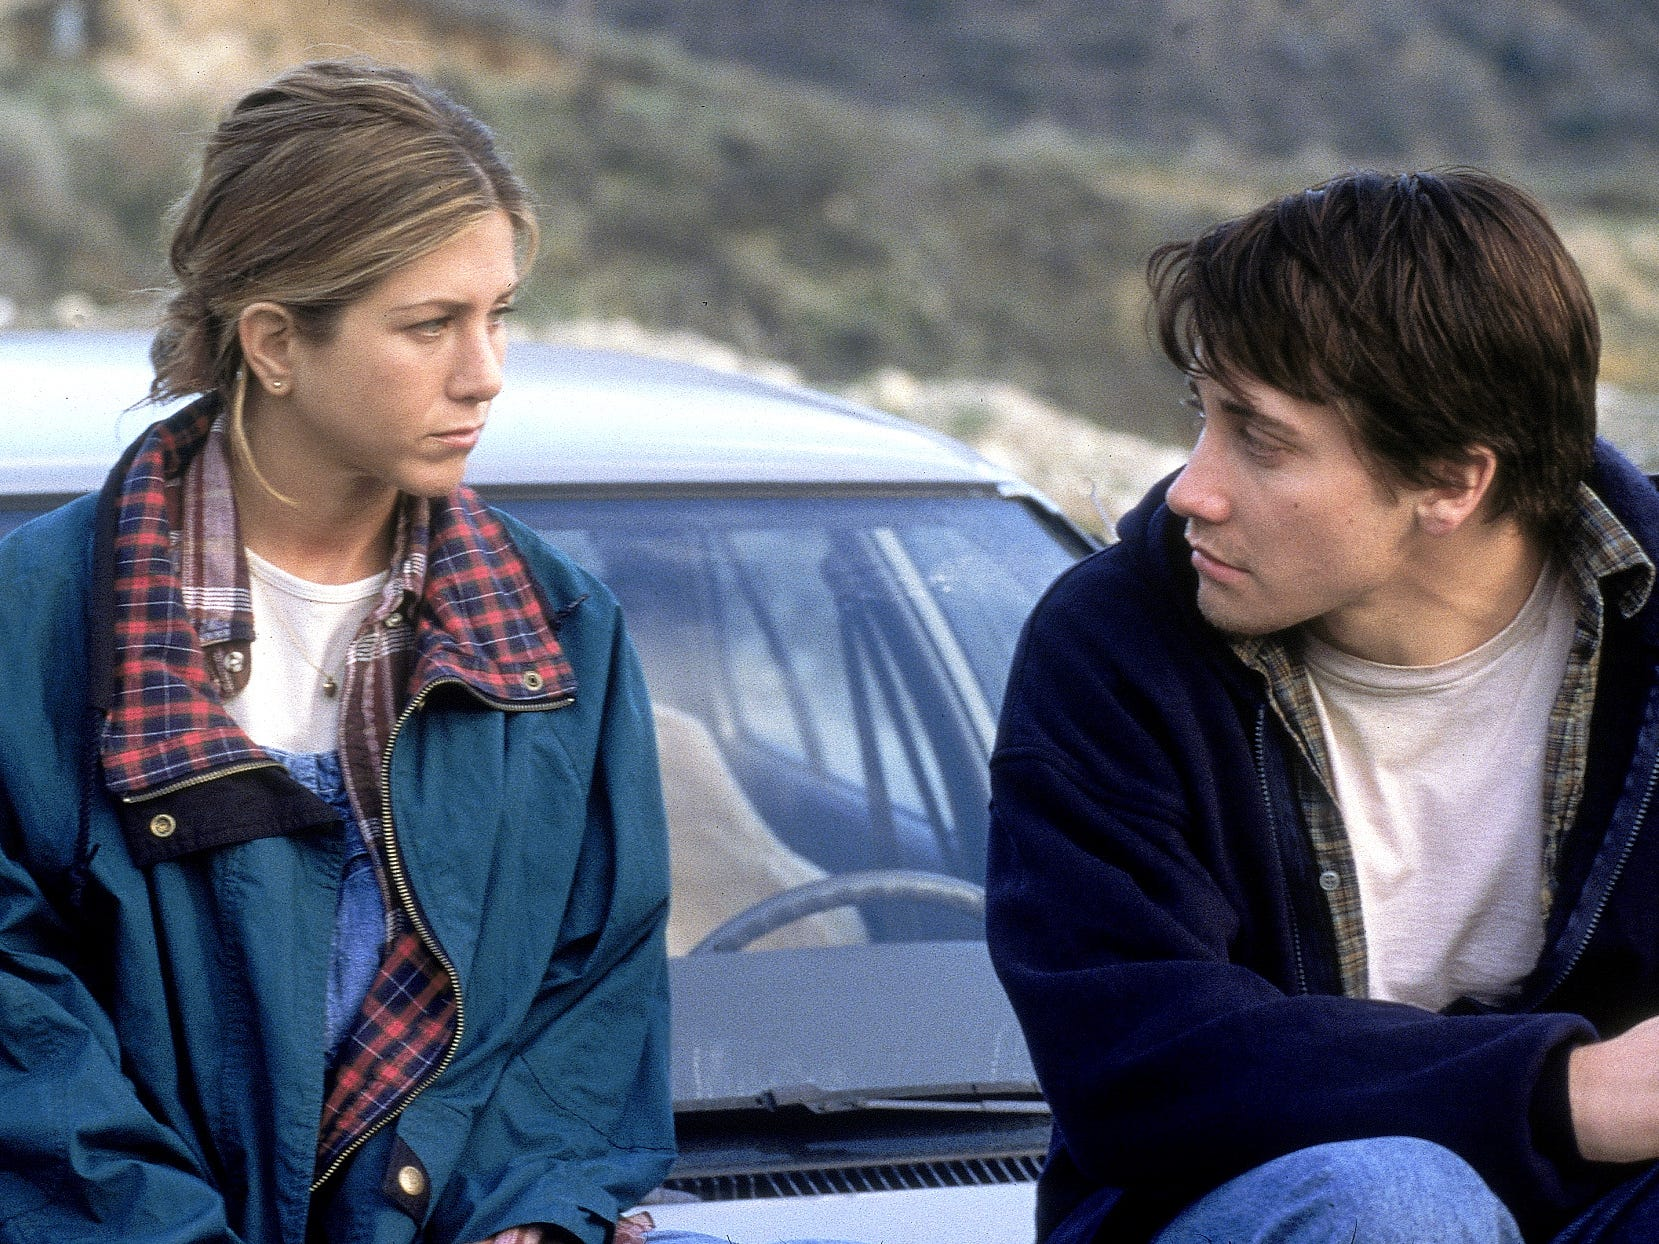 """In 2002's """"The Good Girl,"""" Aniston played an unhappily married retail clerk who has an affair with a younger co-worker (Jake Gyllenhaal). It was one of several frumpy characters that would bring her critical acclaim."""